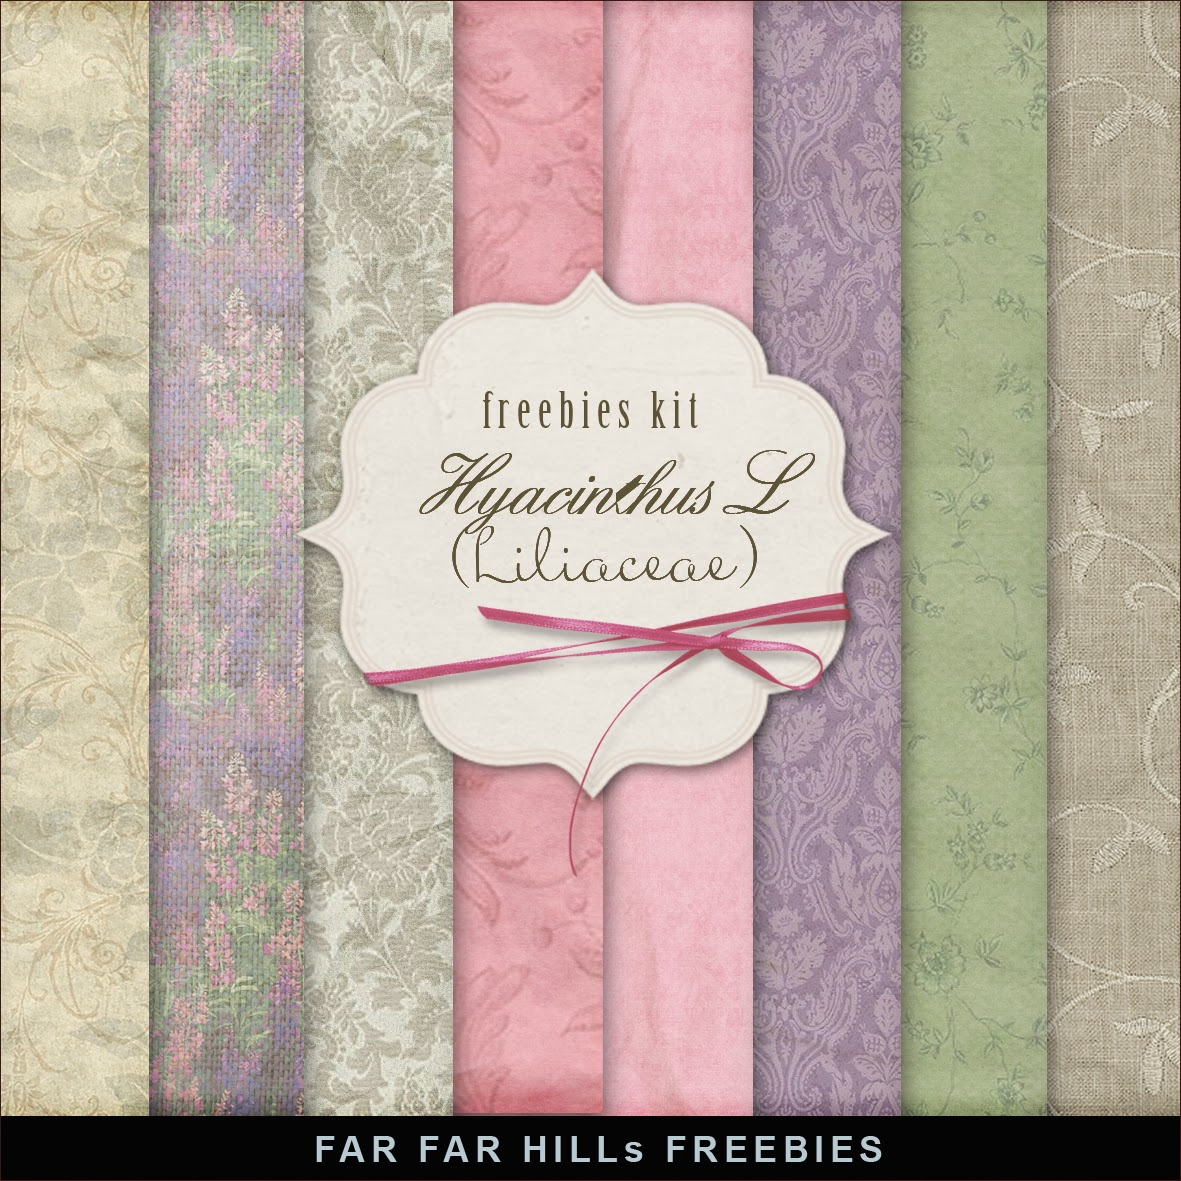 Freebies Papers Kit - Hyacinthus